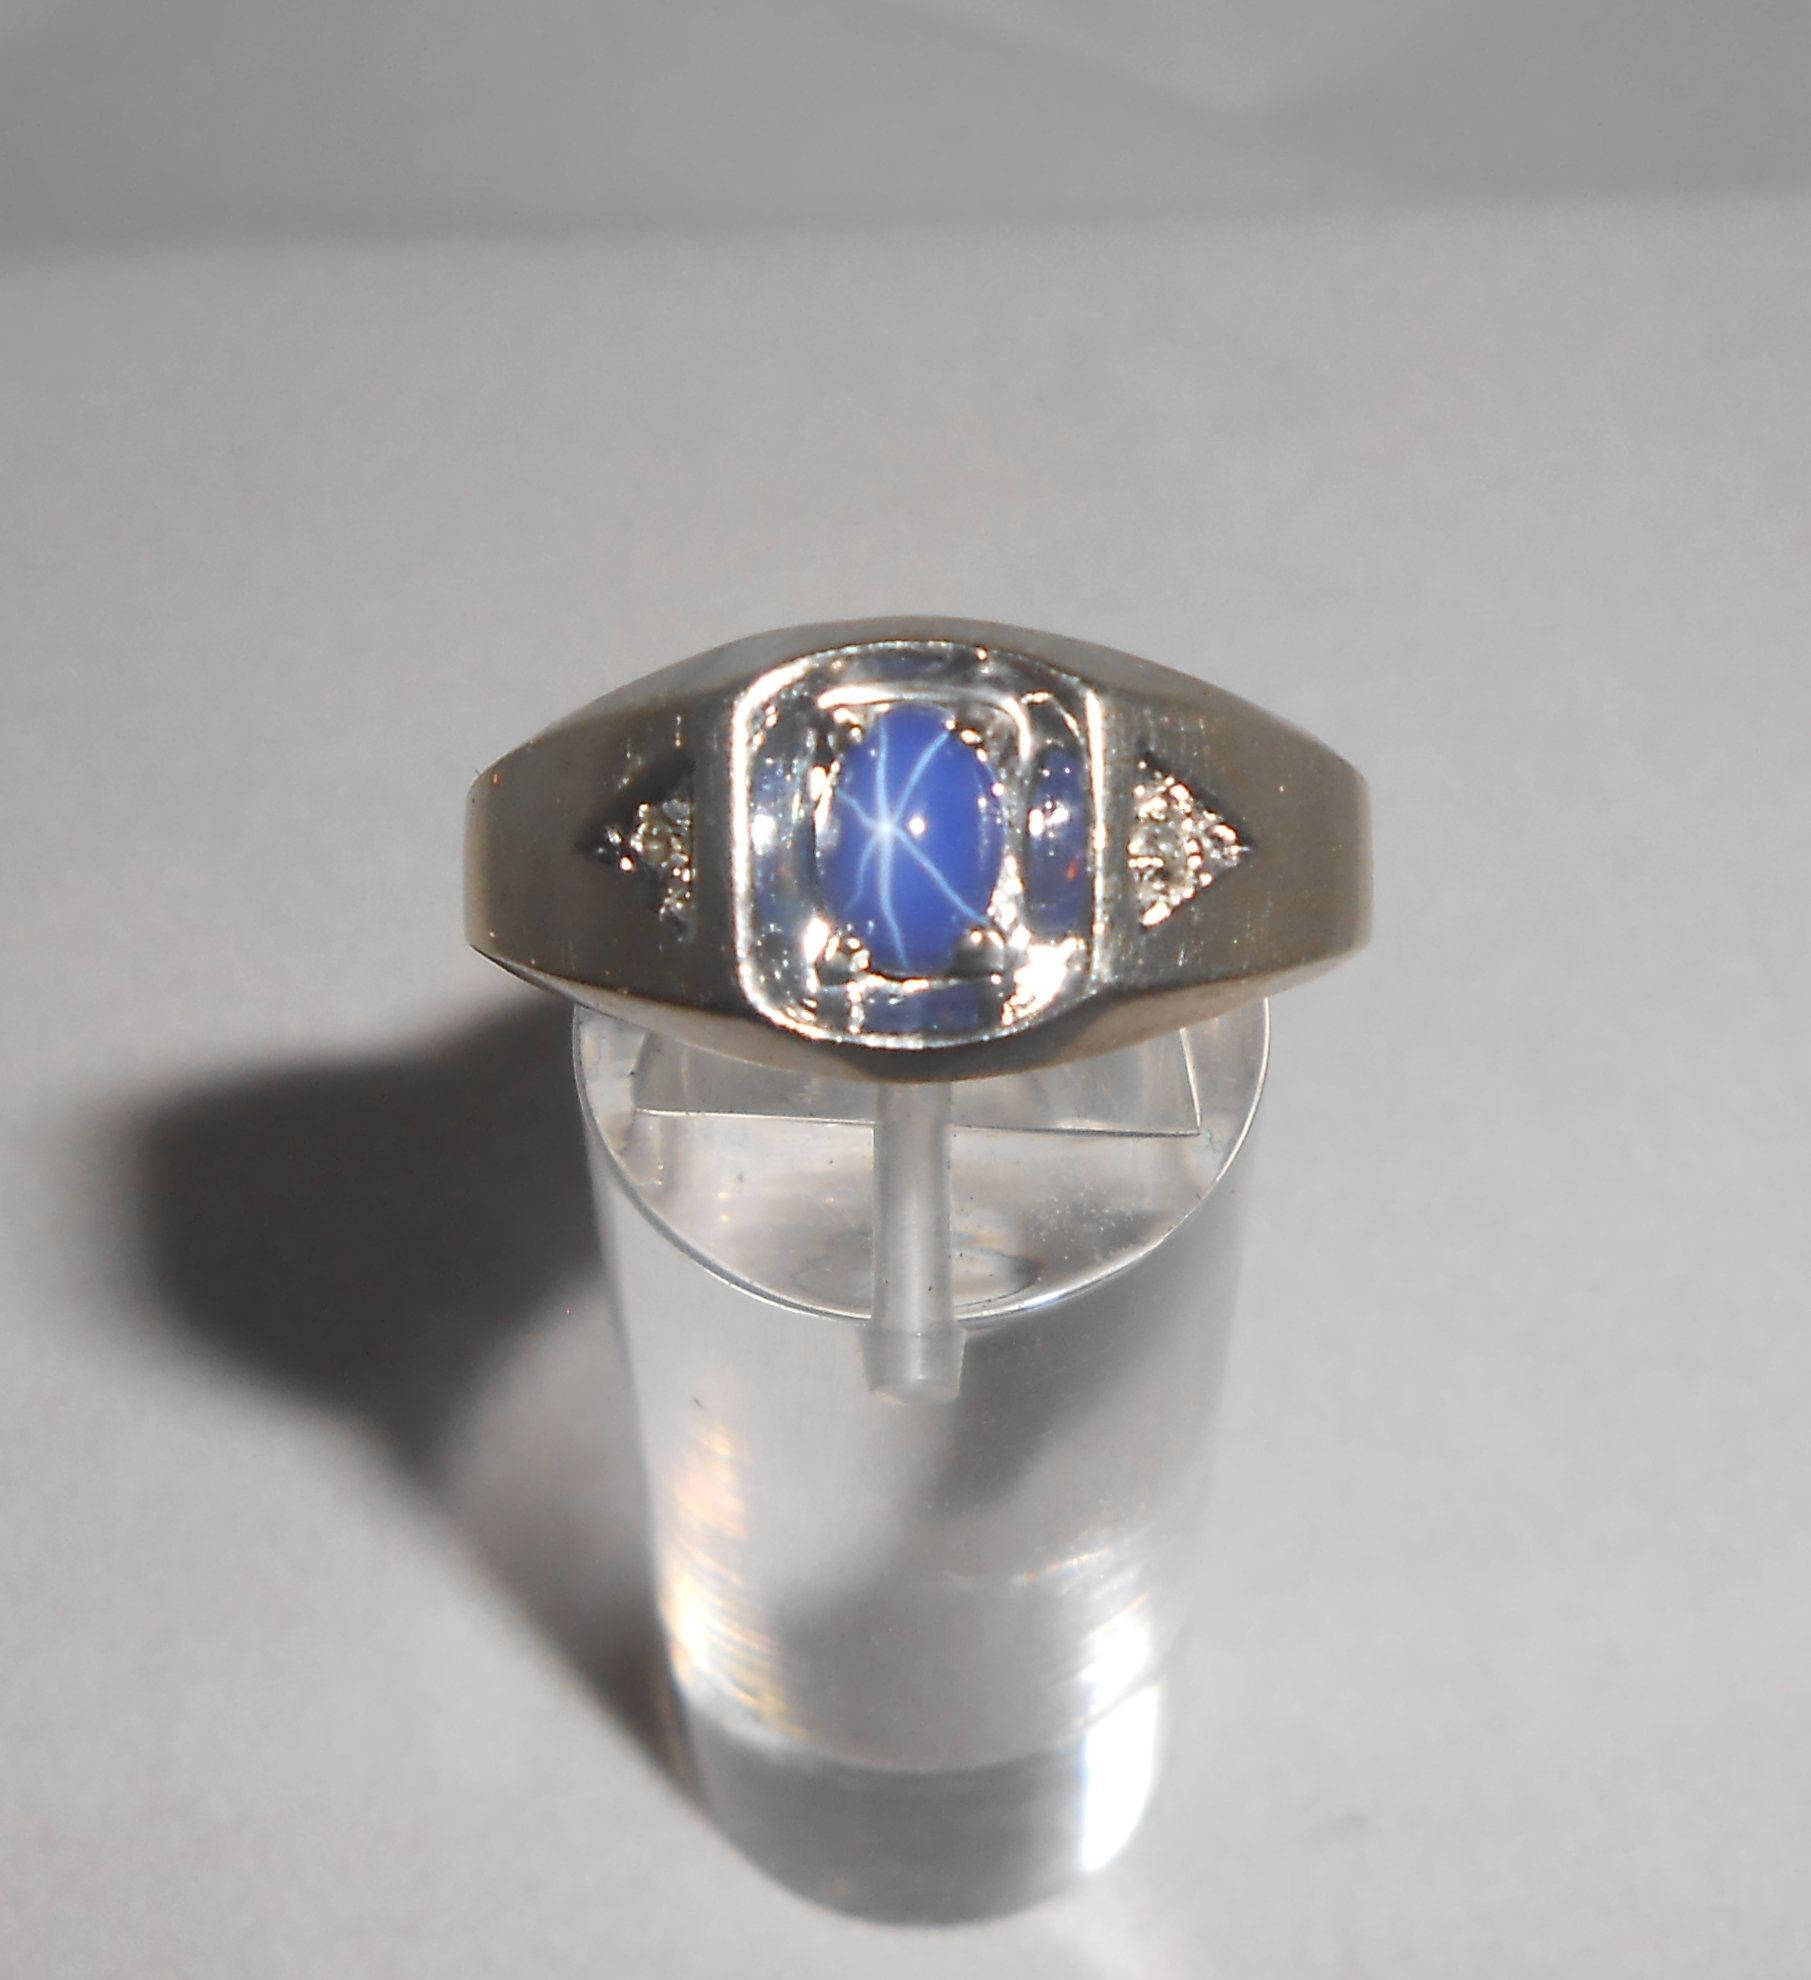 Star Sapphire Ring Gents Ring 10k Gold Ring Men White Gold Ring Diamond Accent Mens Ring Mens Gift Blue Sapphire Ring In 2020 Star Sapphire Ring Rings For Men Mens Gold Rings